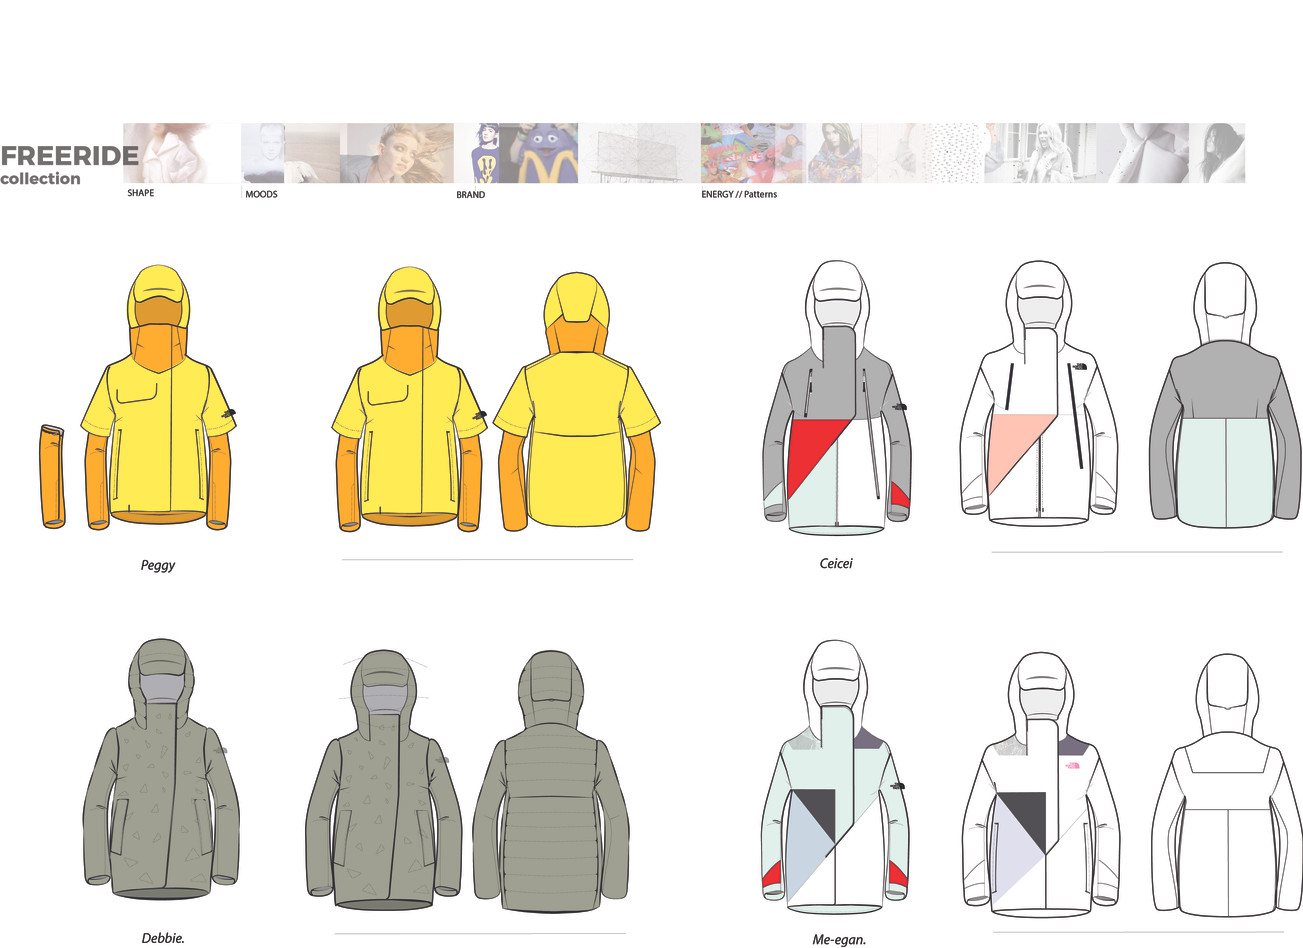 TNF FREE RIDE COLLECTION